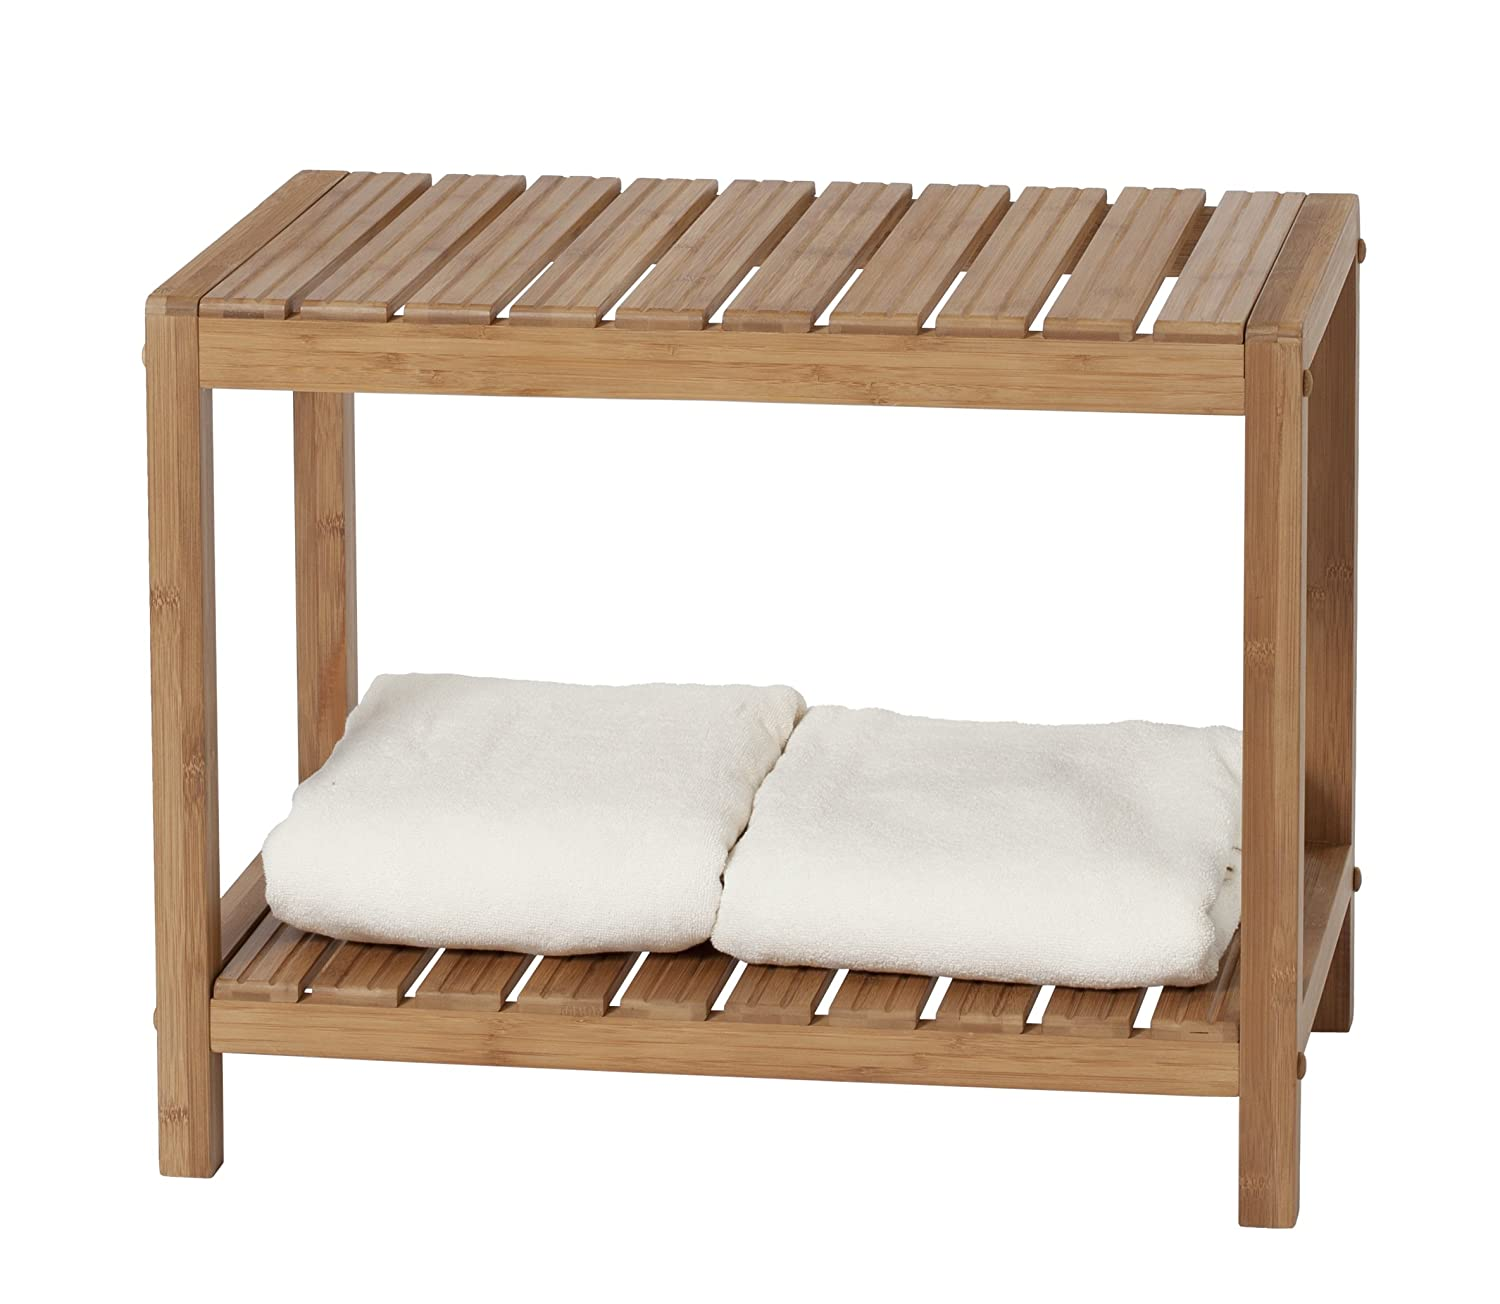 Amazon.com: CreativeWare Eco Styles Spa Bench: Kitchen & Dining